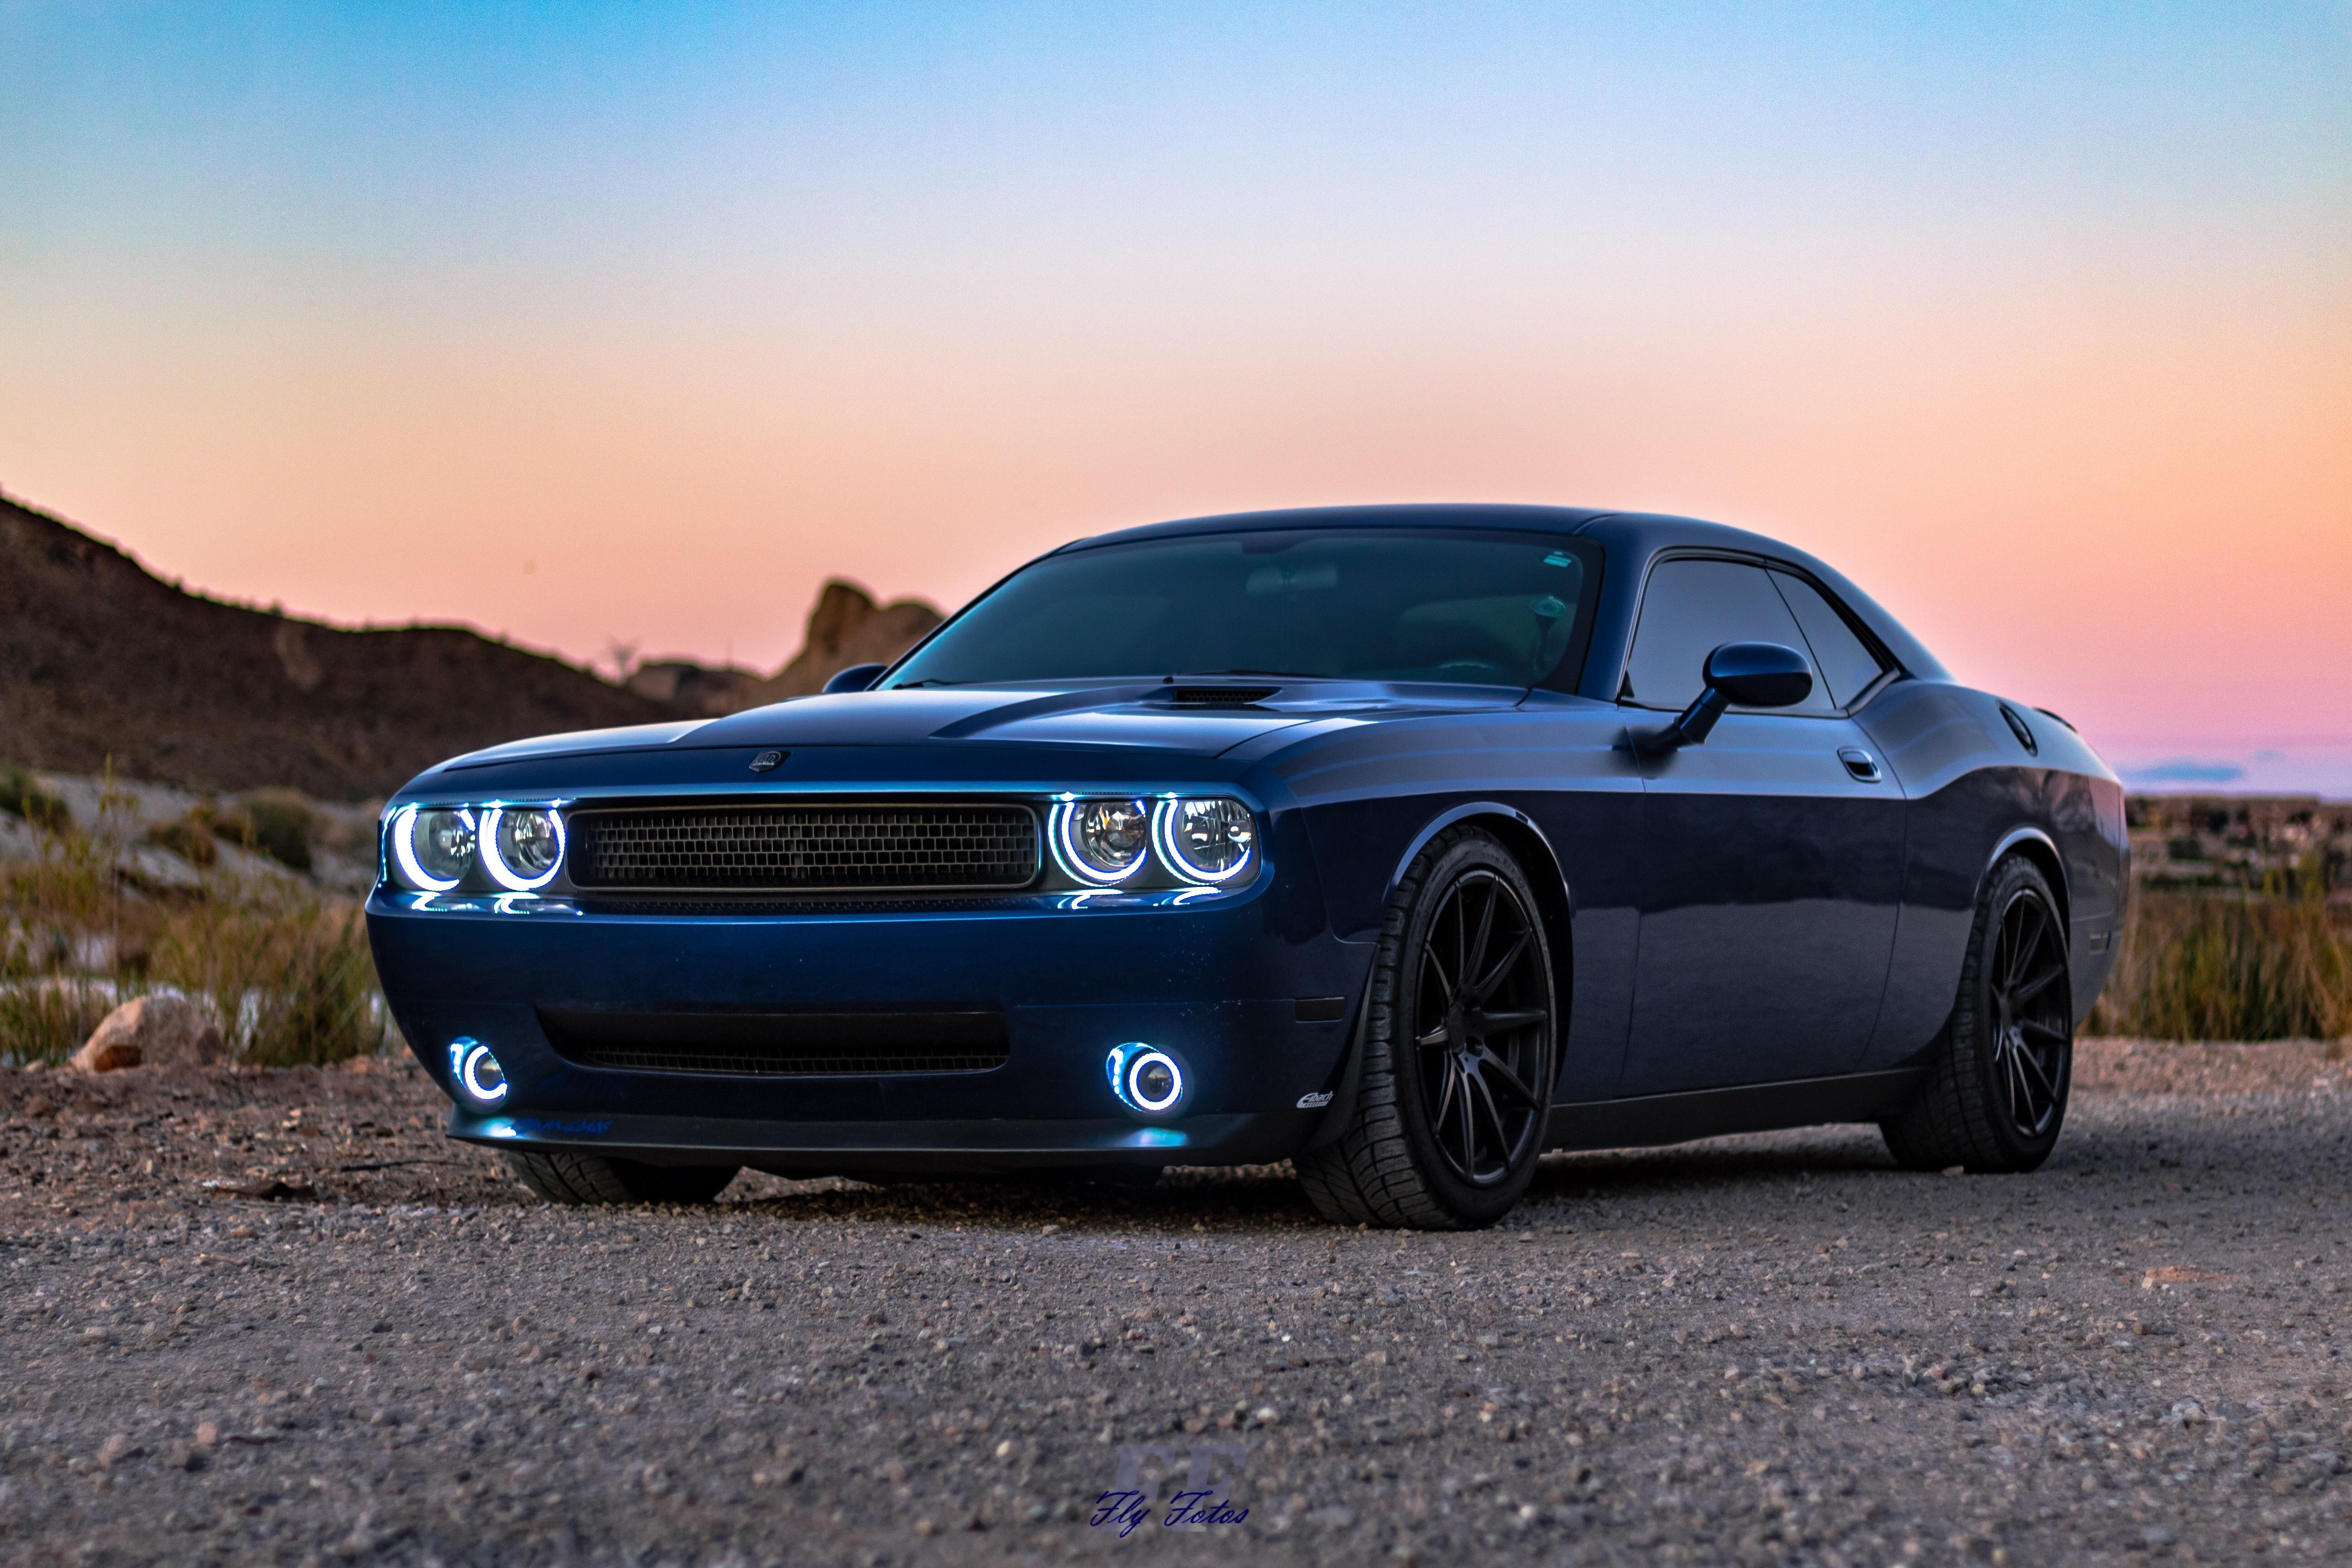 1920x1080 Blue Dodge Challenger 5k Laptop Full Hd 1080p Hd 4k Wallpapers Images Backgrounds Photos And Pictures